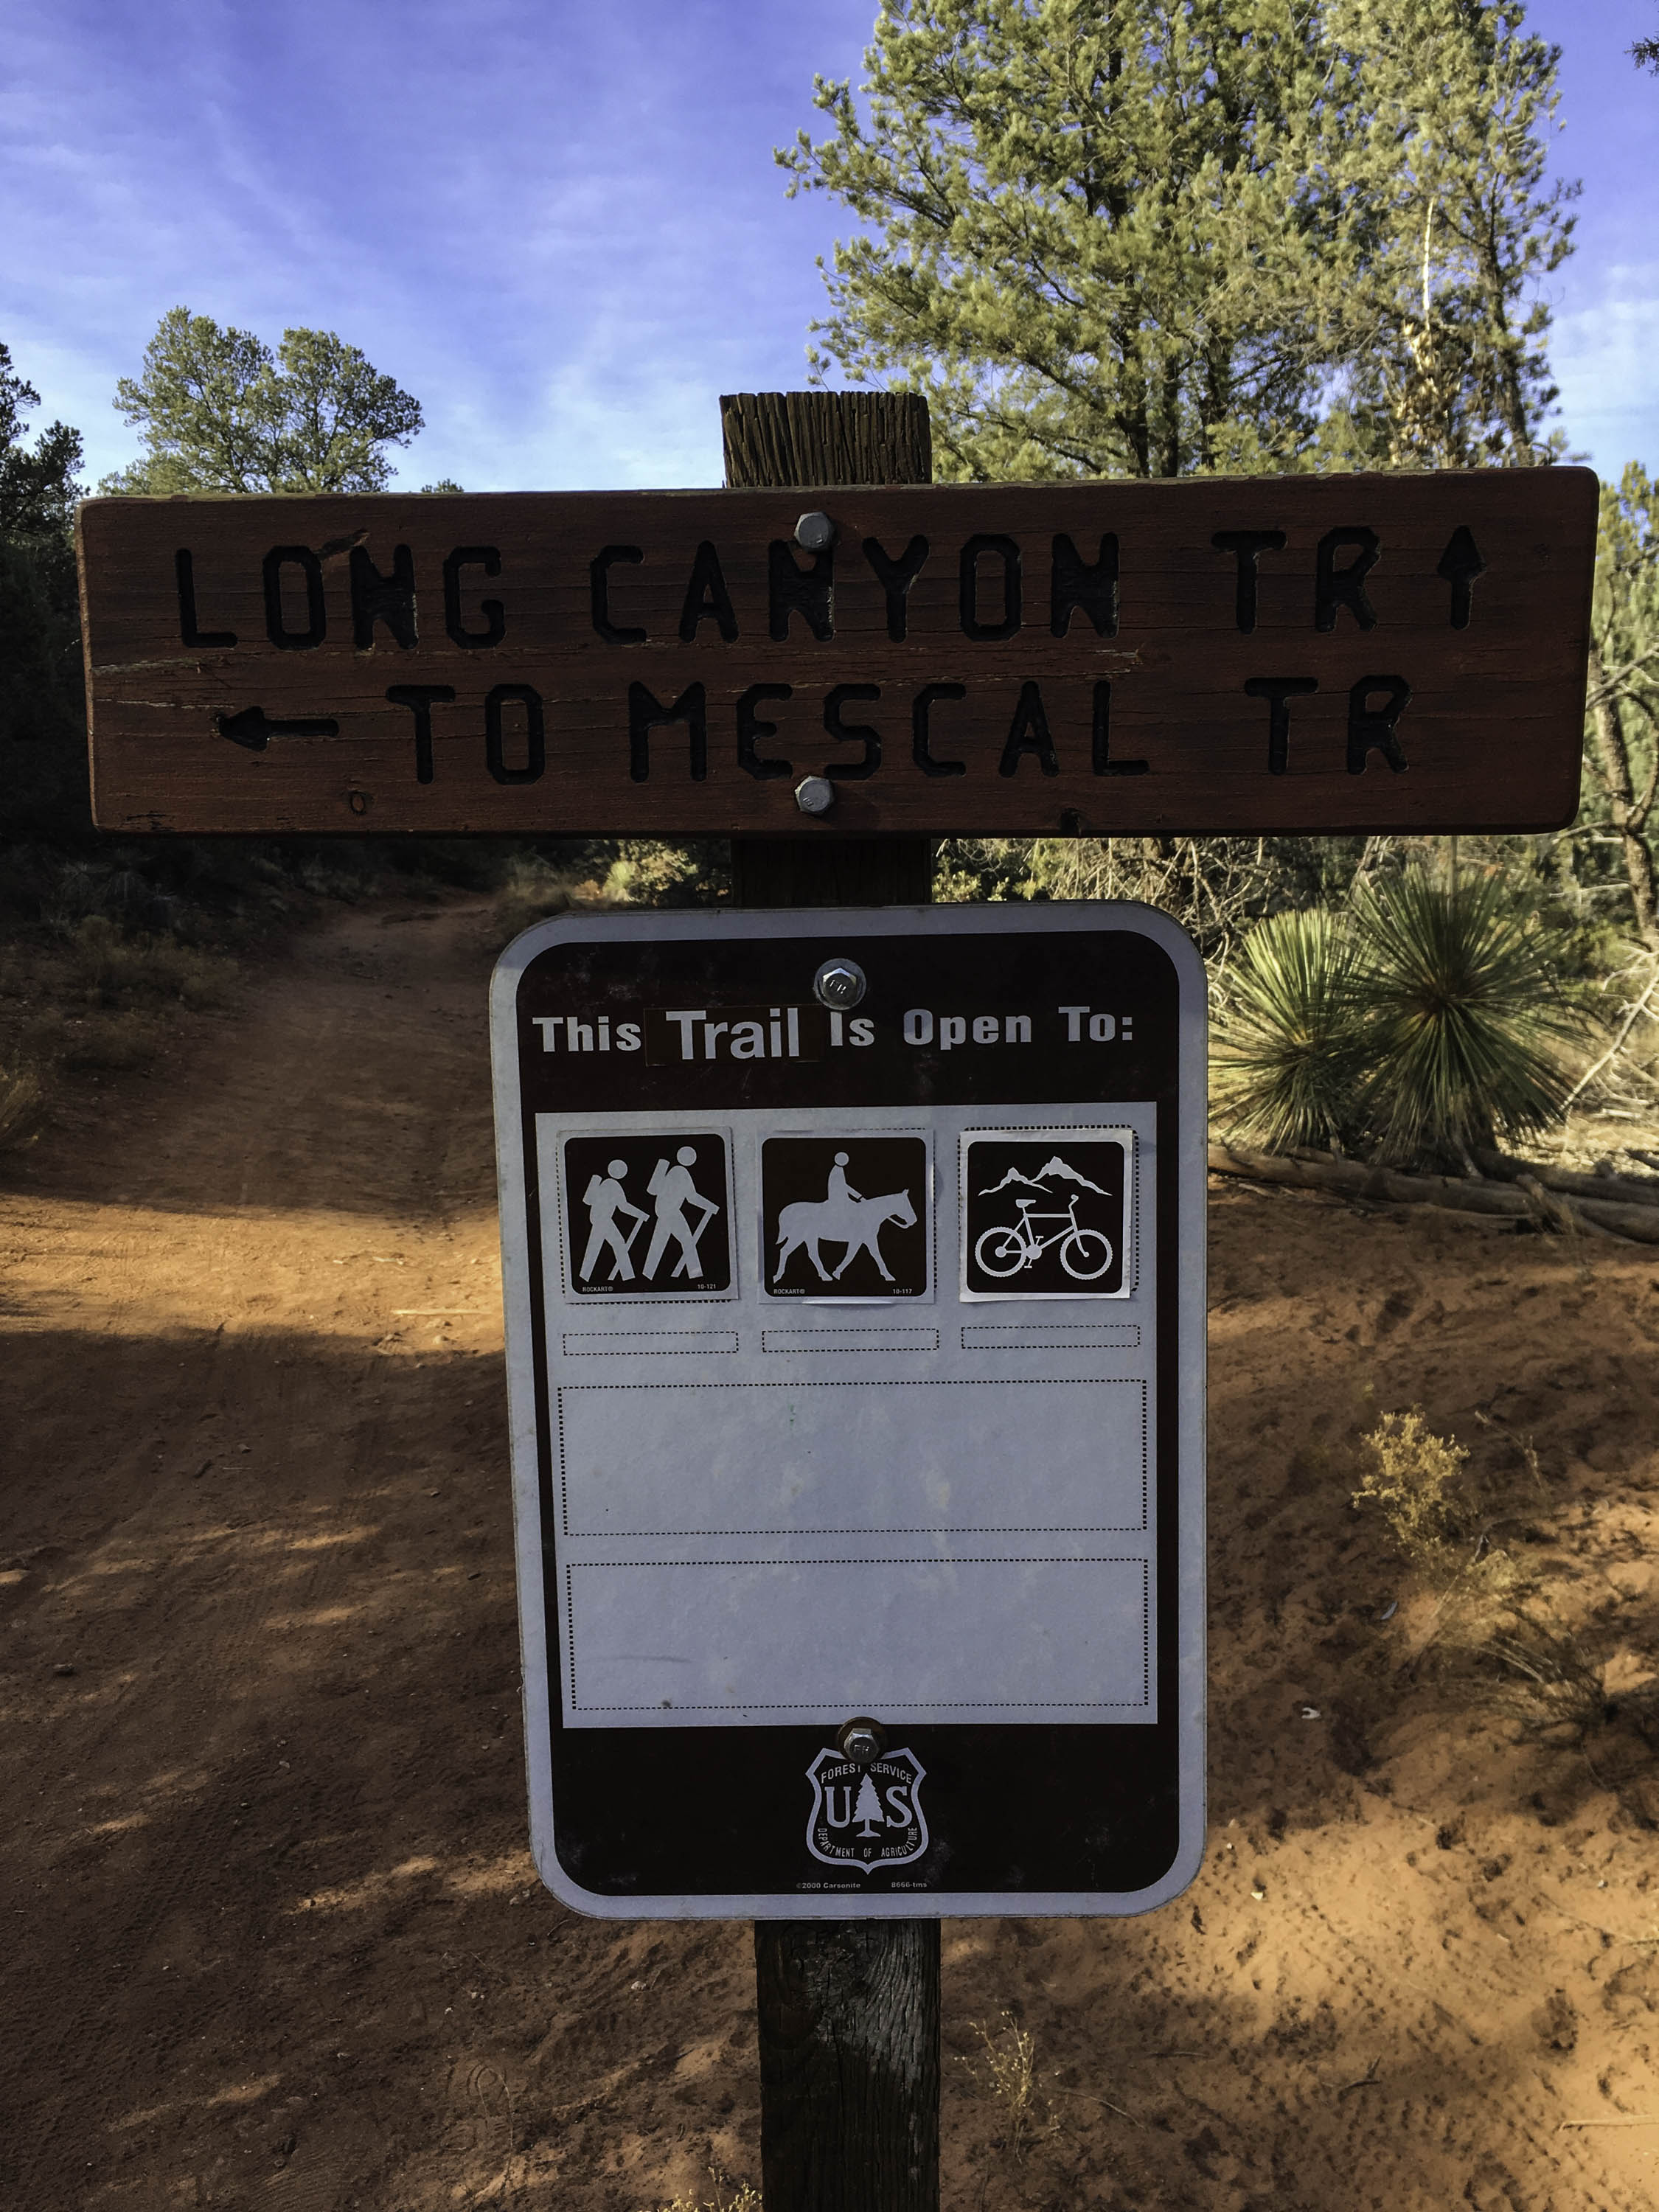 Go straight on Long Canyon Trail.